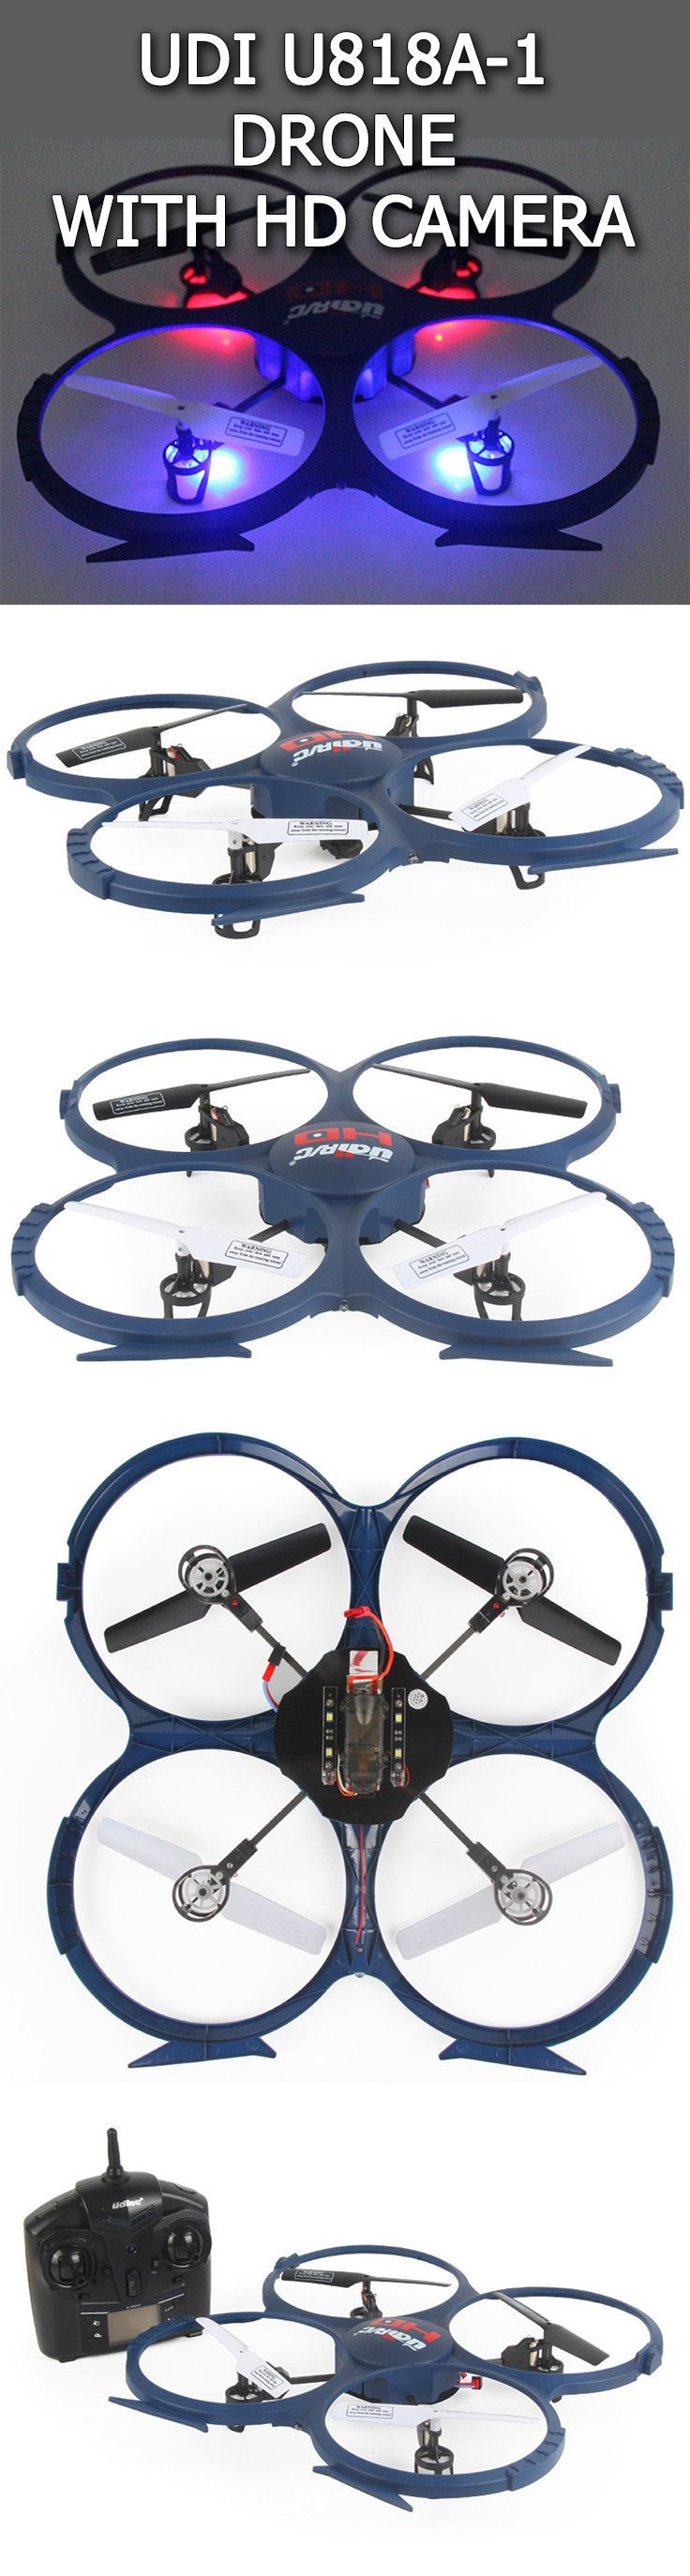 UDI U818A-1 Drone With HD Camera.  | drone | drone with camera | drone camera | drones for sale | dron | camera drone | best drones | rc drone | quadcopter with camera | best drones with camera | rc quadcopter | gopro drone | best camera drone | best quadcopter | quadcopter drone | quadcopter |